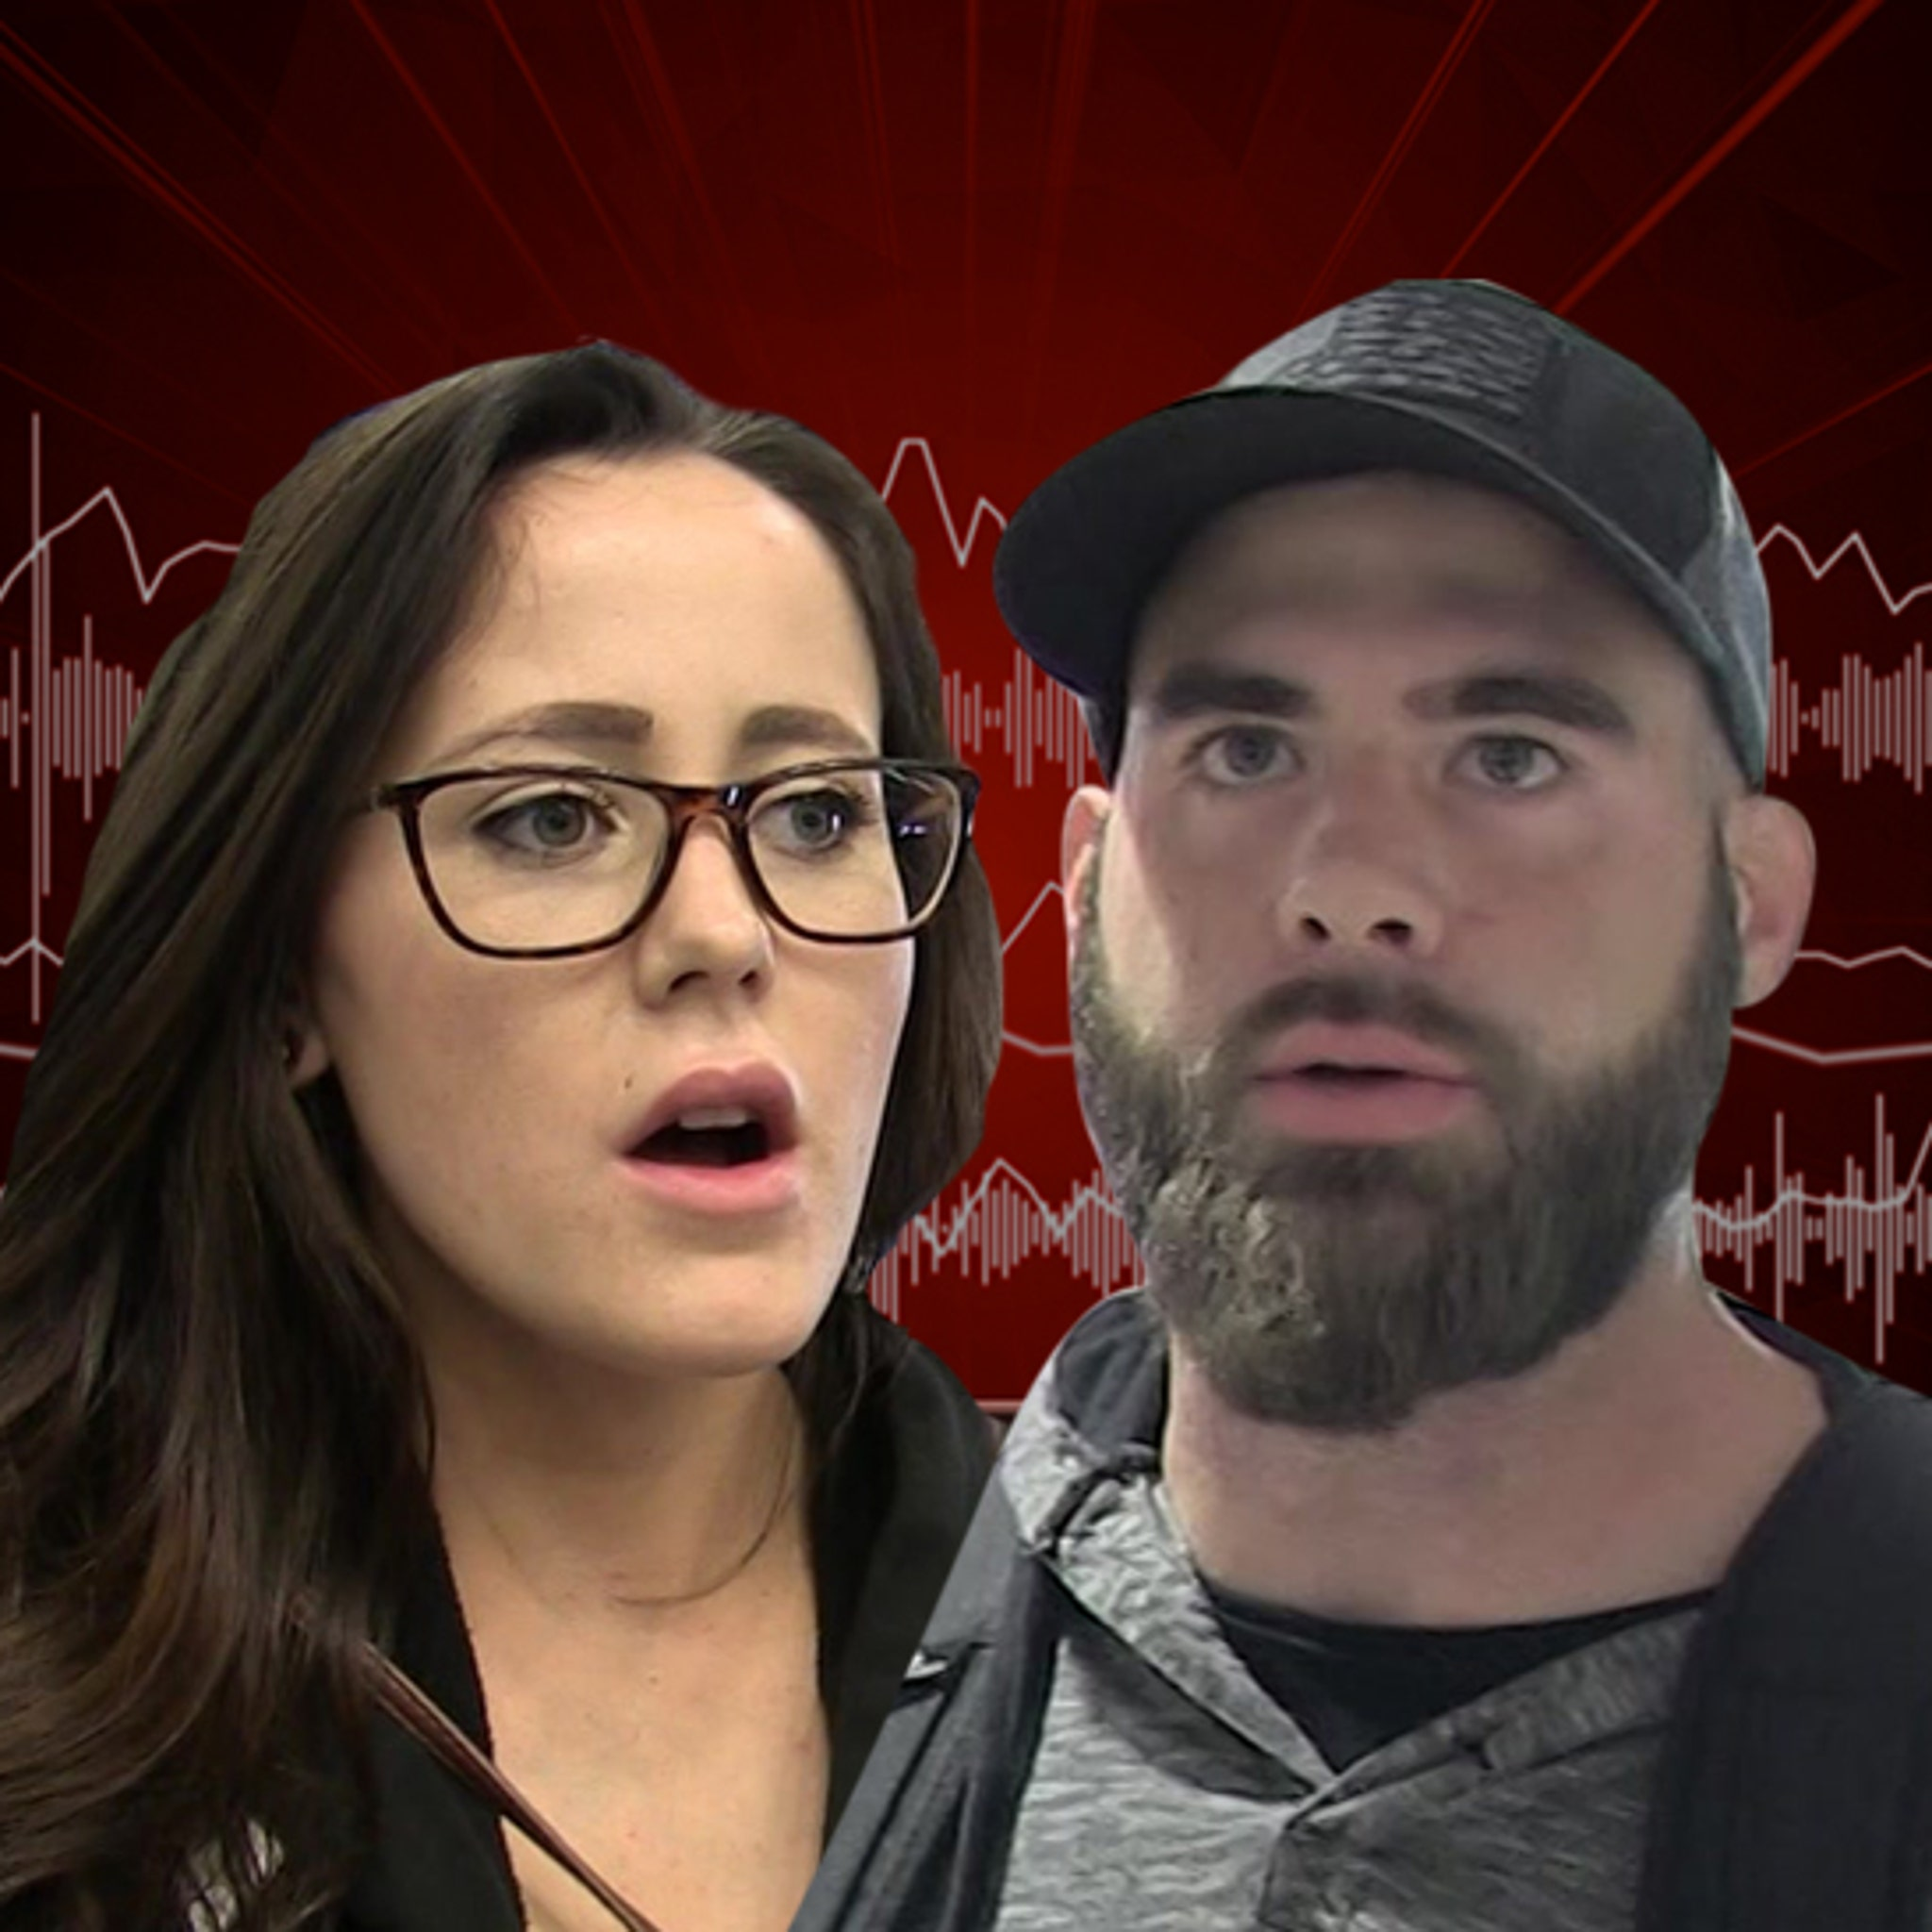 Teen Mom' Star Jenelle Evans' Hysterical 911 Call, Claims Husband